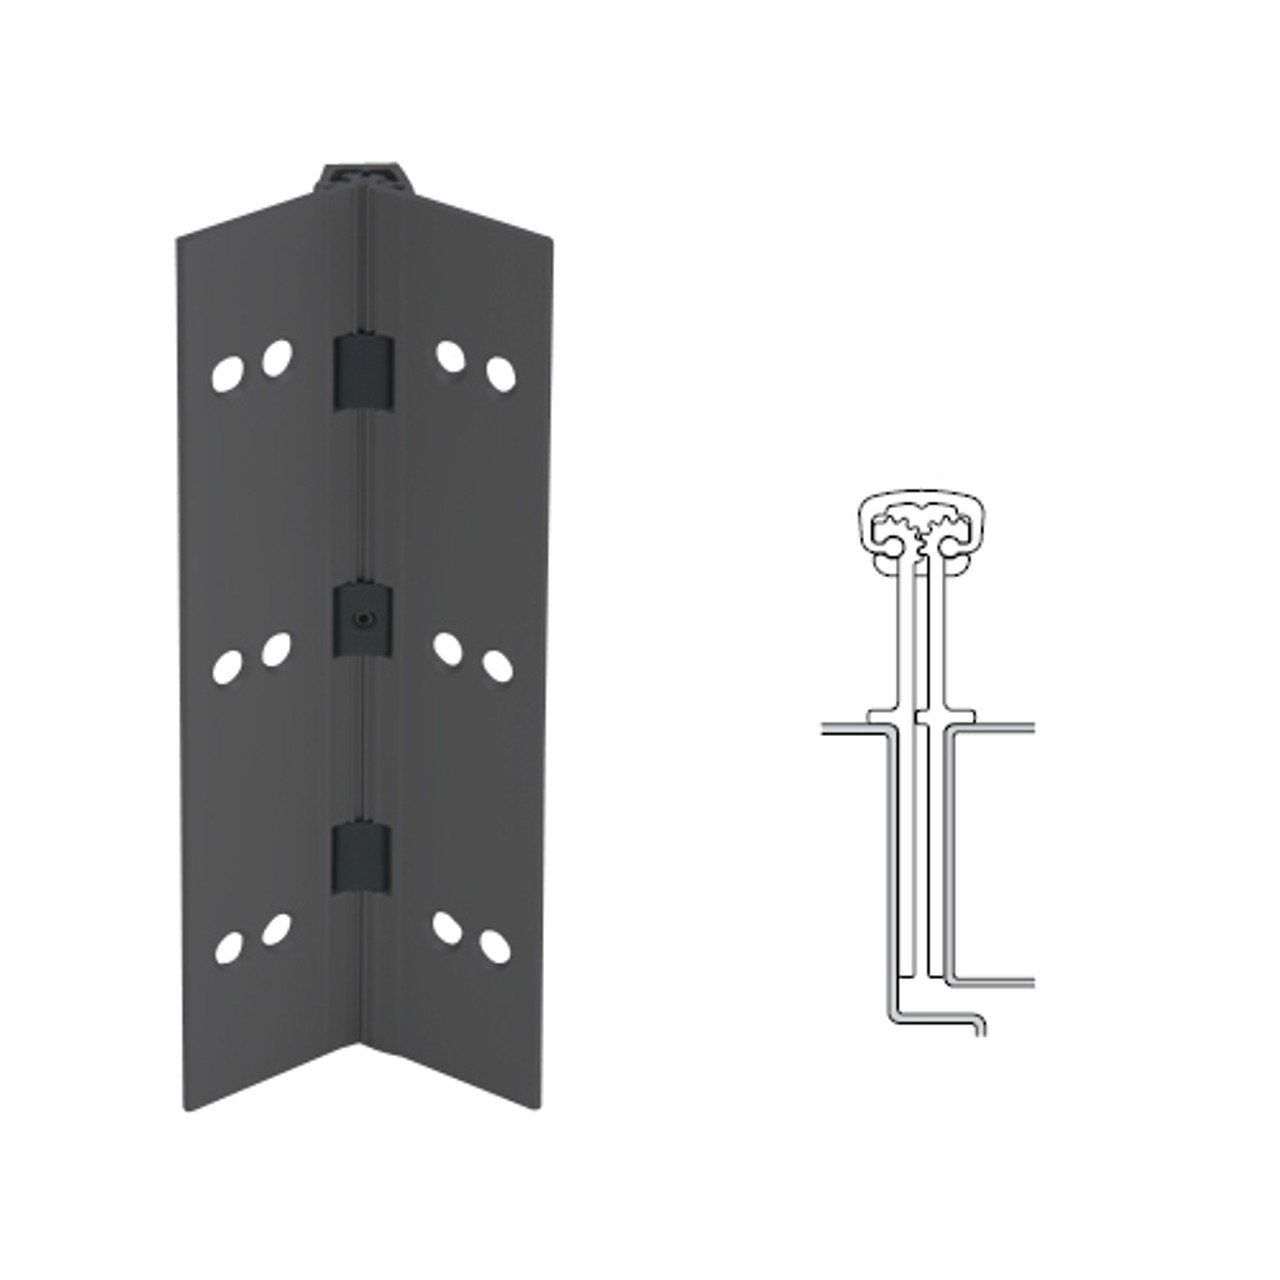 040XY-315AN-95-TFWD IVES Full Mortise Continuous Geared Hinges with Thread Forming Screws in Anodized Black